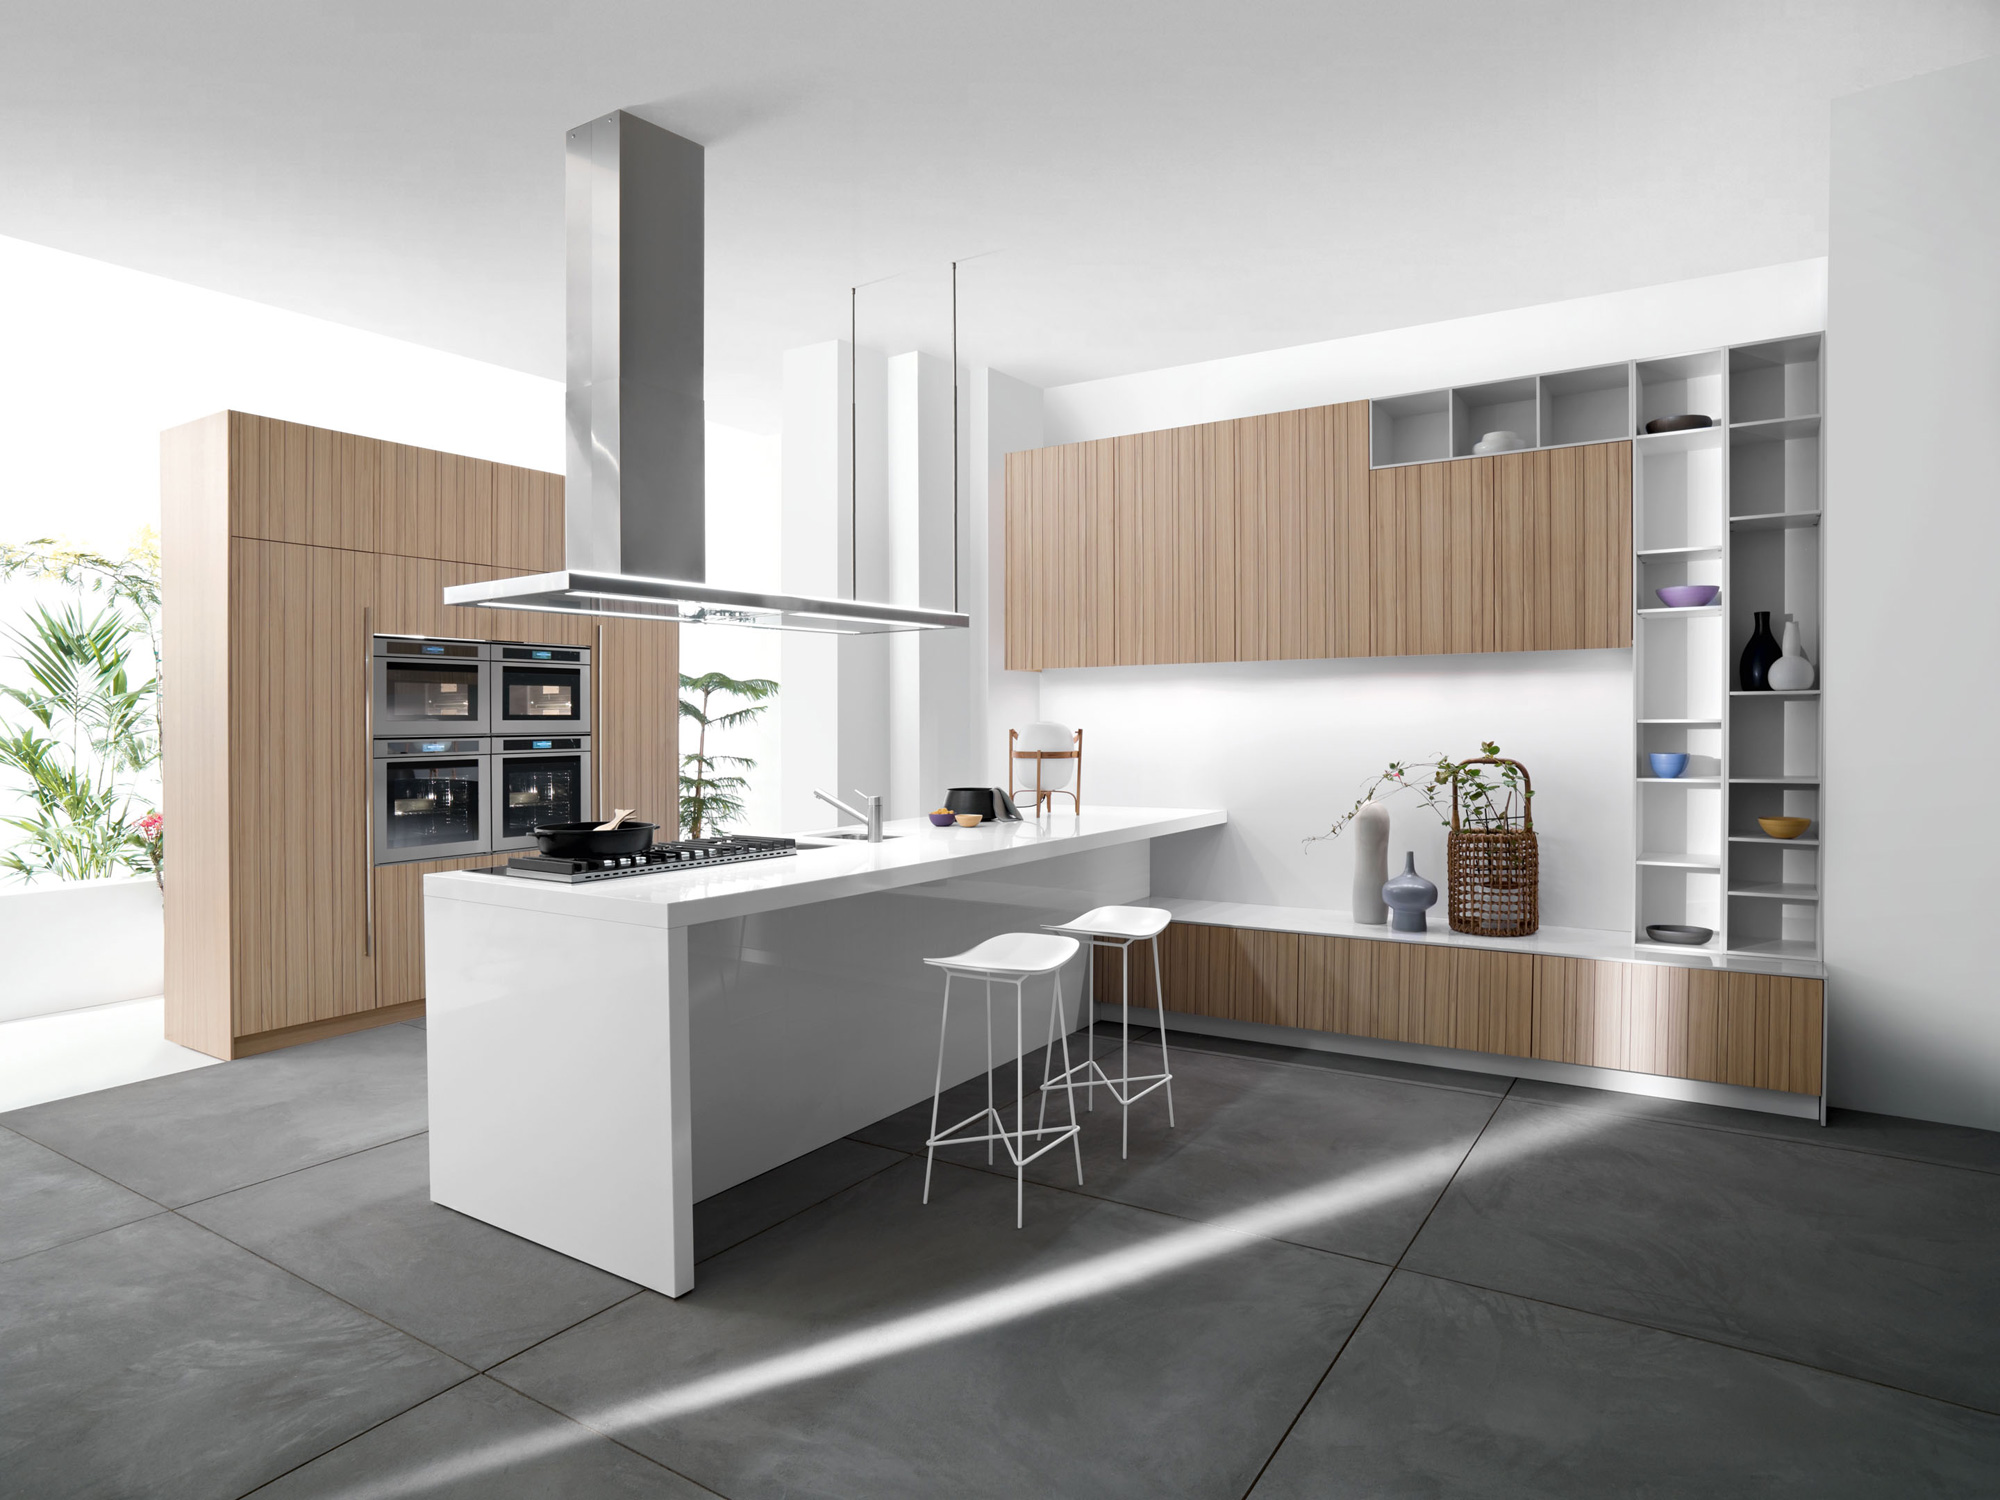 kitchen design ideas 2014 drawer cabinet base white island and wire barstools for modern with wall unit marble flooring